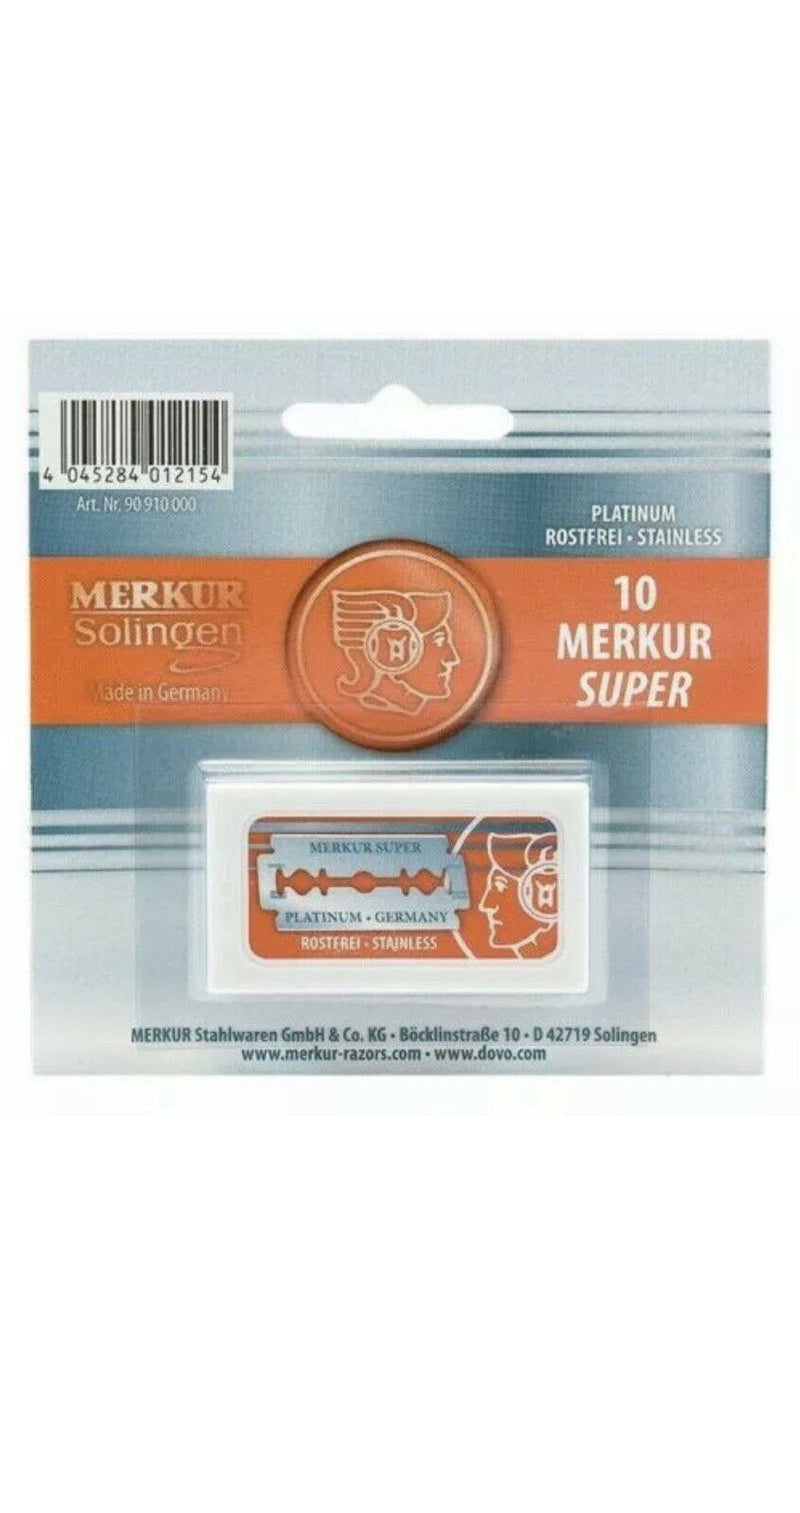 Merkur 30C DE Safety Razor Black Chrome Handle Merkur DE Blades (10)